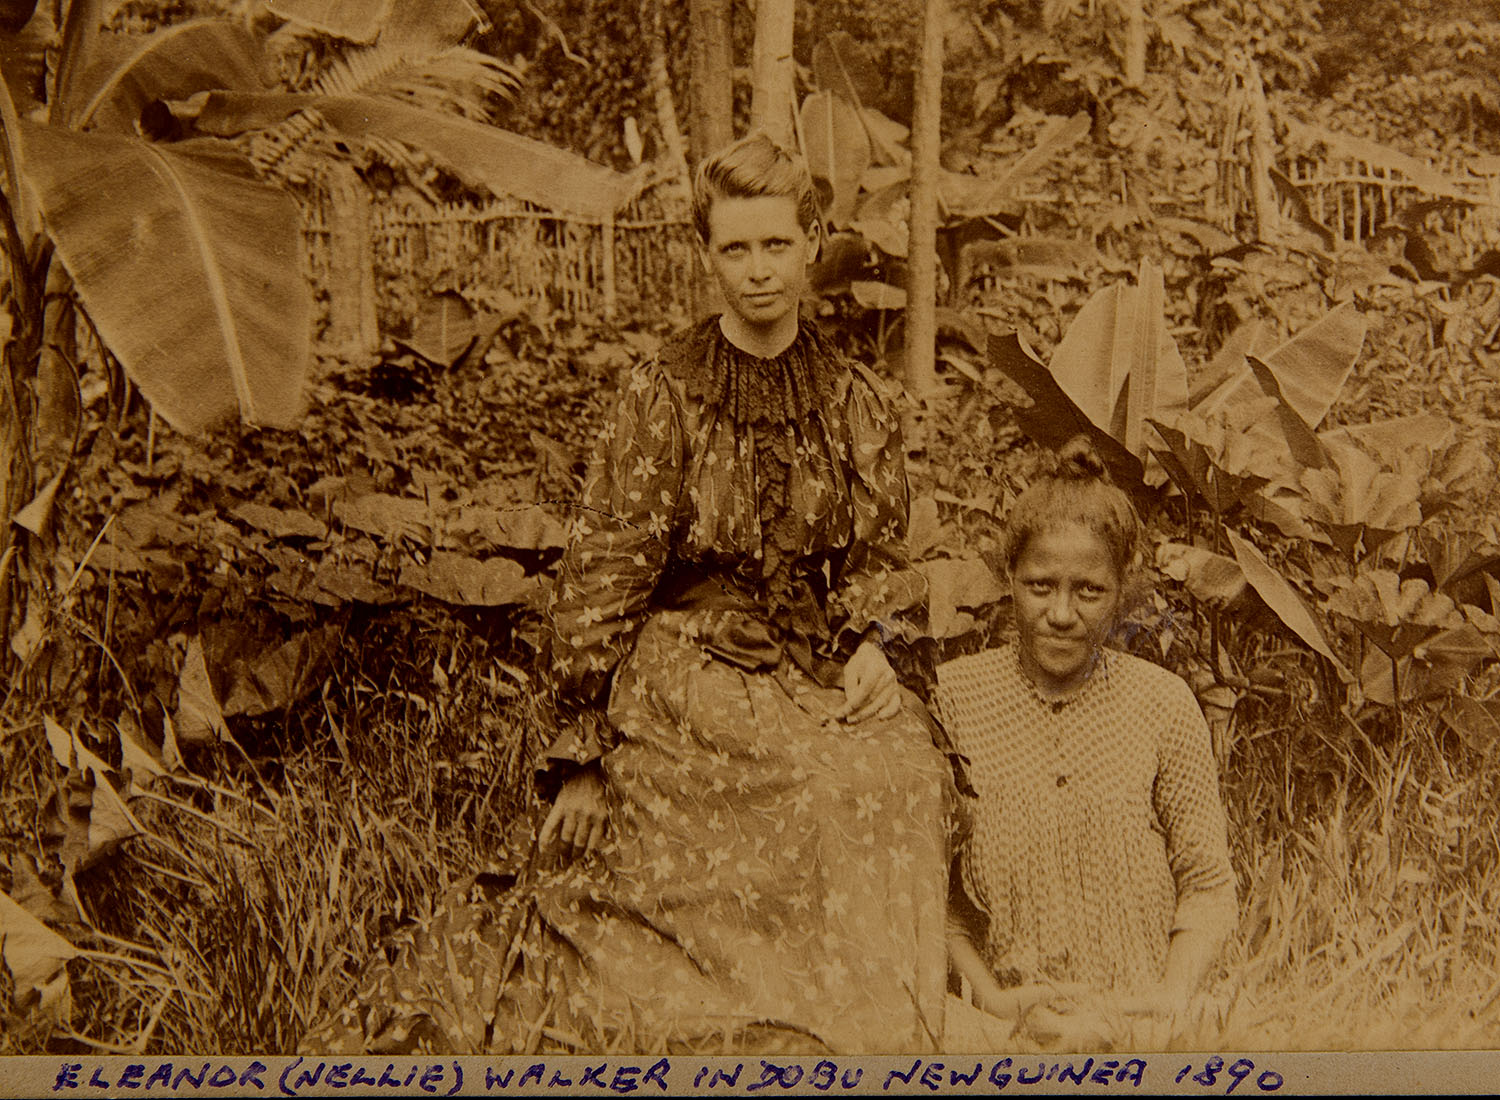 Eleanor (Nellie) Walker and an unidentified Dobuan woman, 1890.